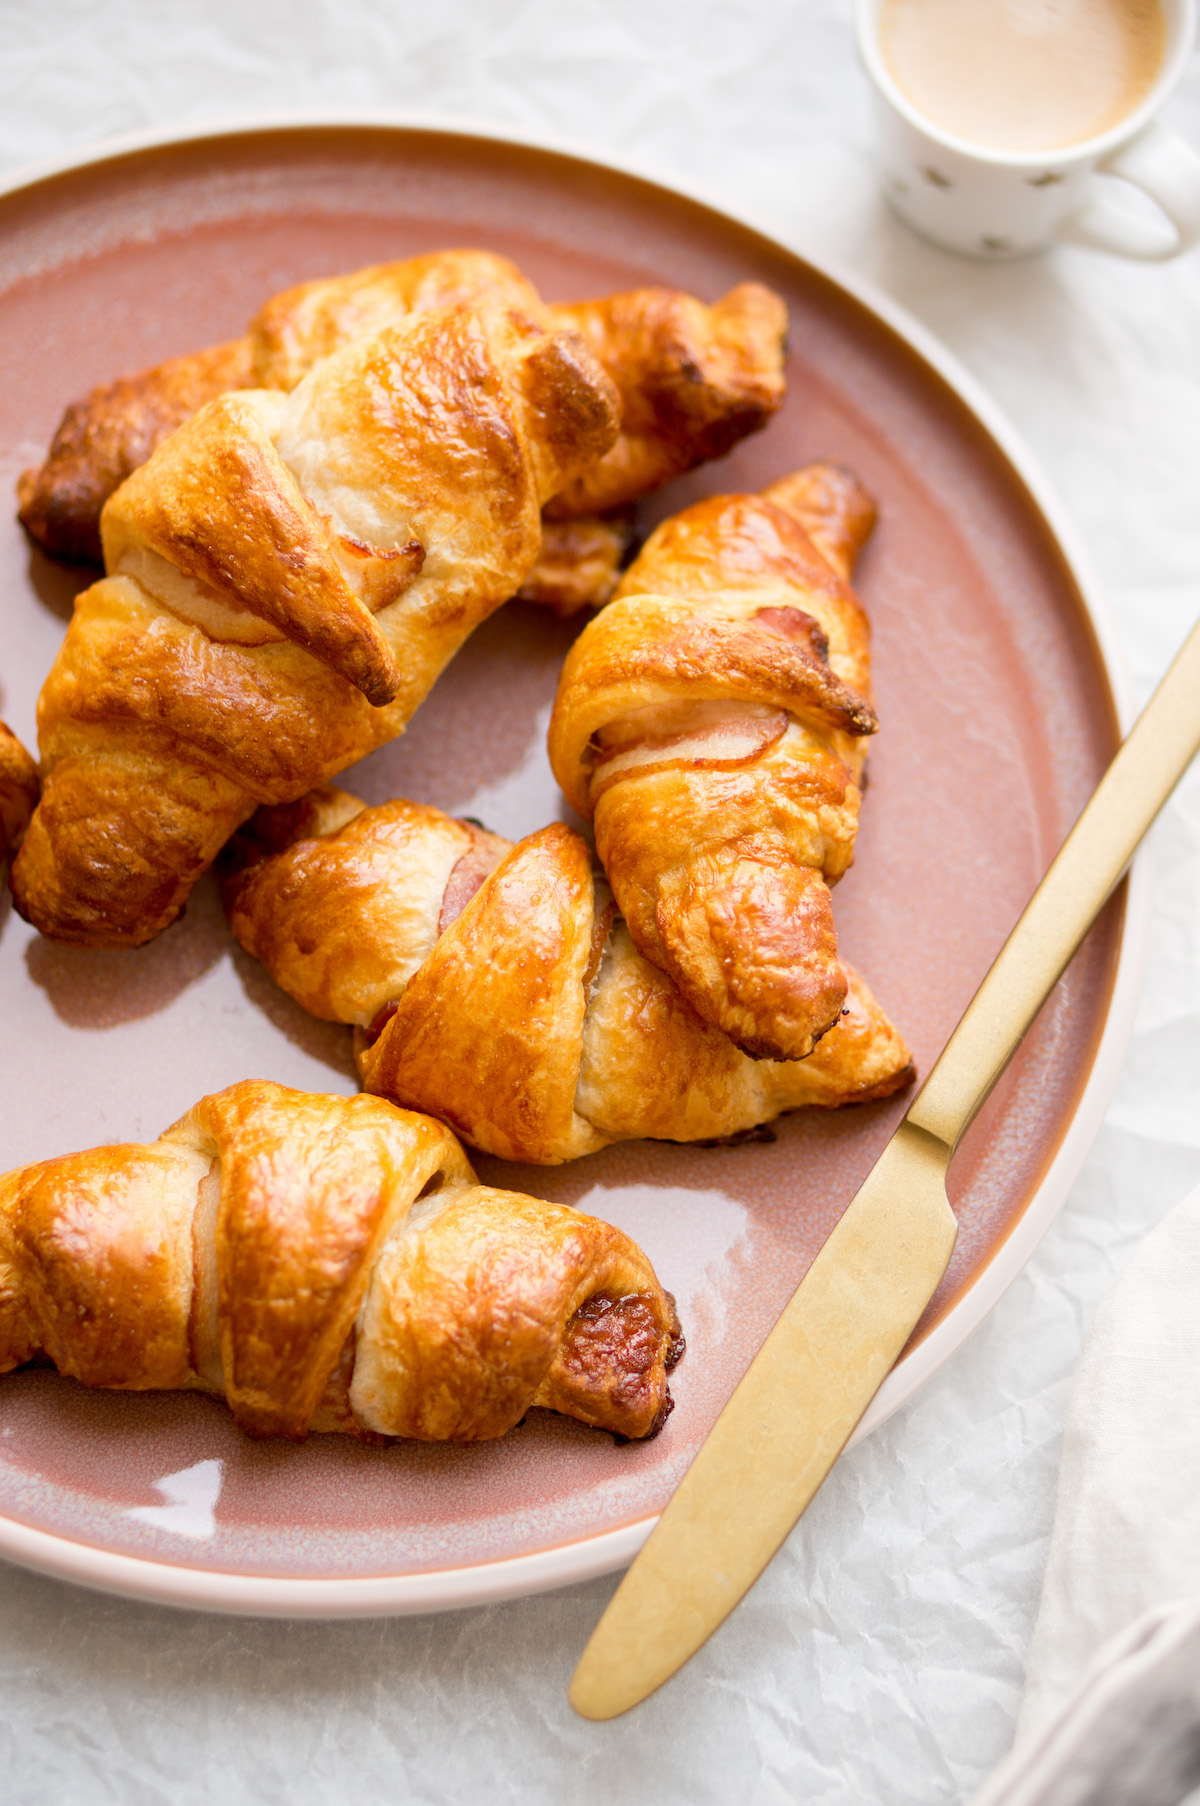 Croissants with bacon and syrup: an easy recipe! &quot; width = &quot;1200&quot; height = &quot;1806&quot; /&gt; </figure> <h2> This is how you make bacon and syrup croissants </h2> <p> Preheat the oven to 180 degrees (convection oven). </p> <p> Cut loosen the slices of croissant dough on the seams. Lay the slices with the short side facing you and brush them with a teaspoon of syrup. </p><div class='code-block code-block-7' style='margin: 8px 0; clear: both;'> <script async src=